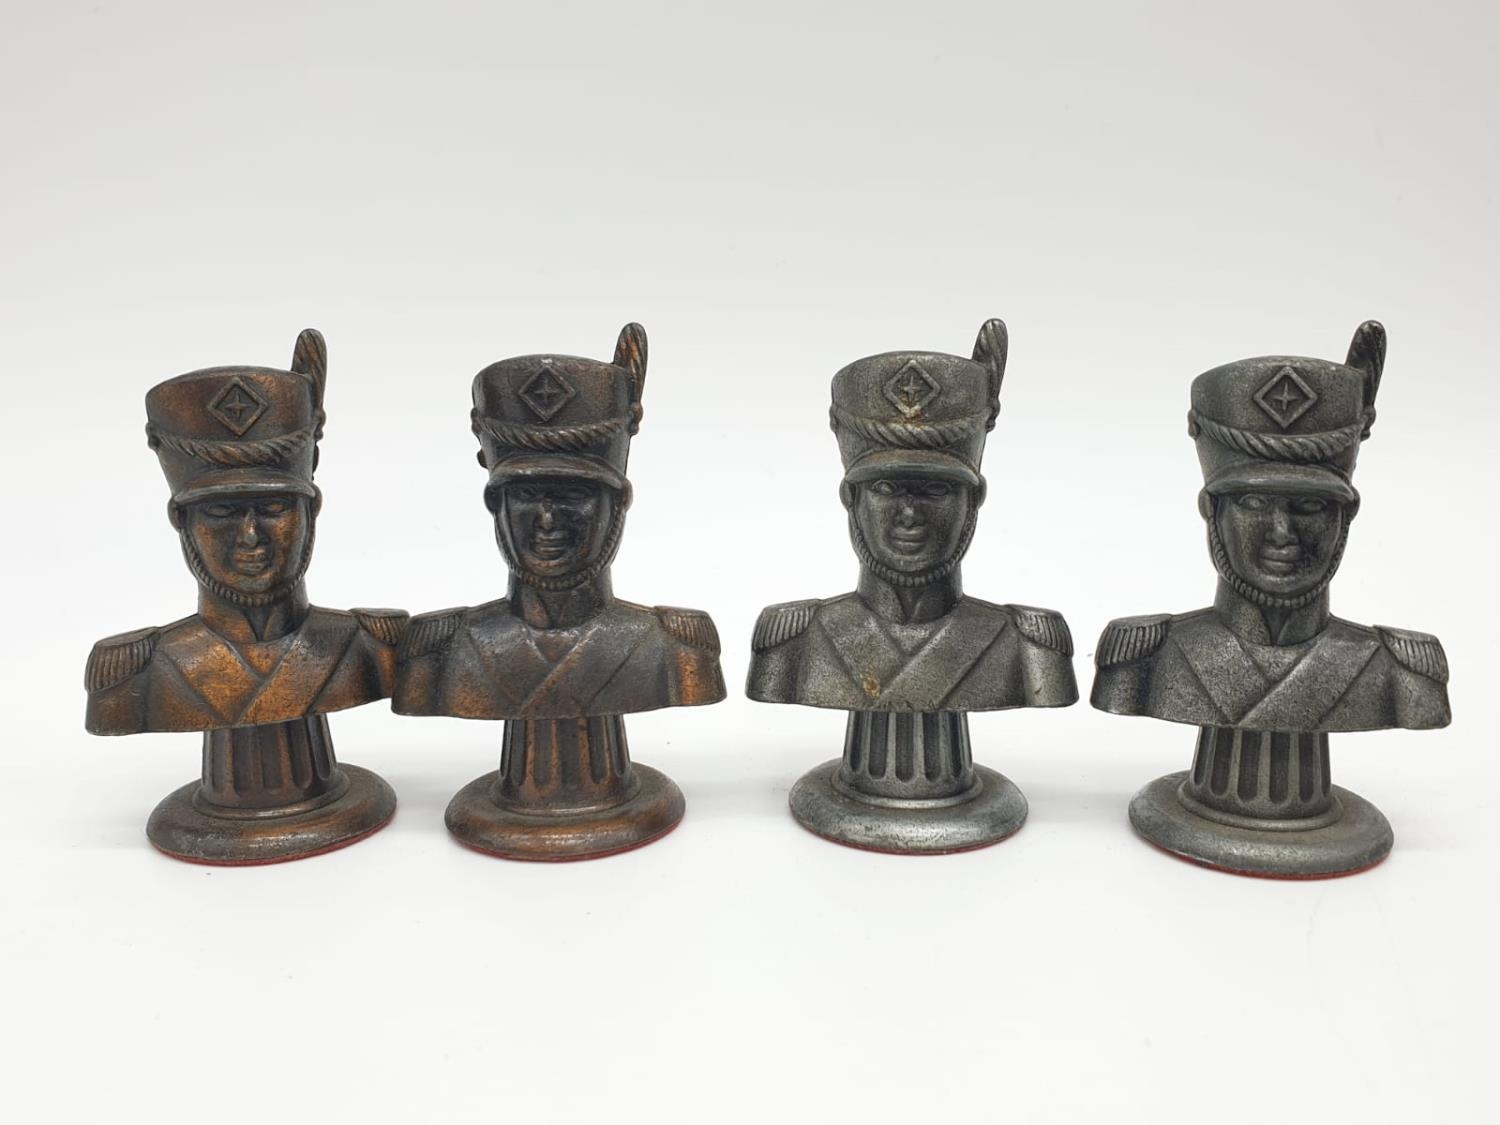 Metal CHESS SET Napoleonic Themed pieces. Napoleon 7.5 cm tall. Play on a square 3.5 cm. - Image 5 of 38